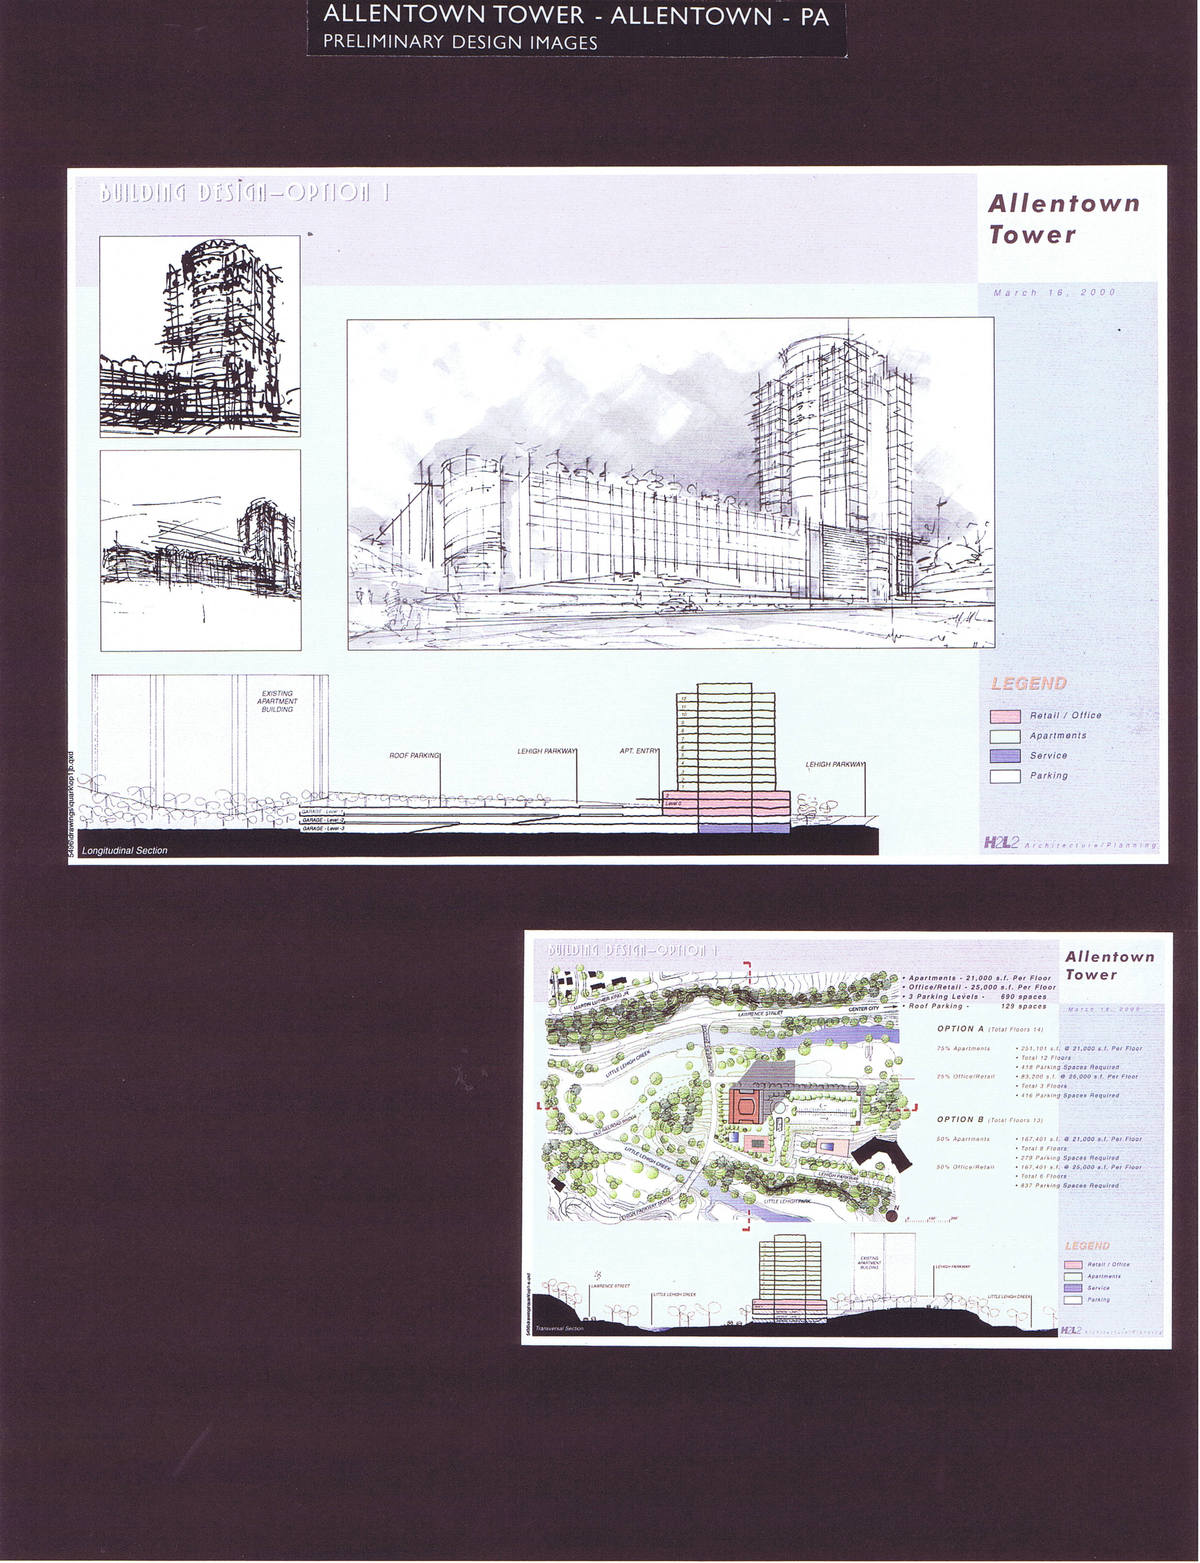 Perspective Sketch, Site Plan and Section, Option 1